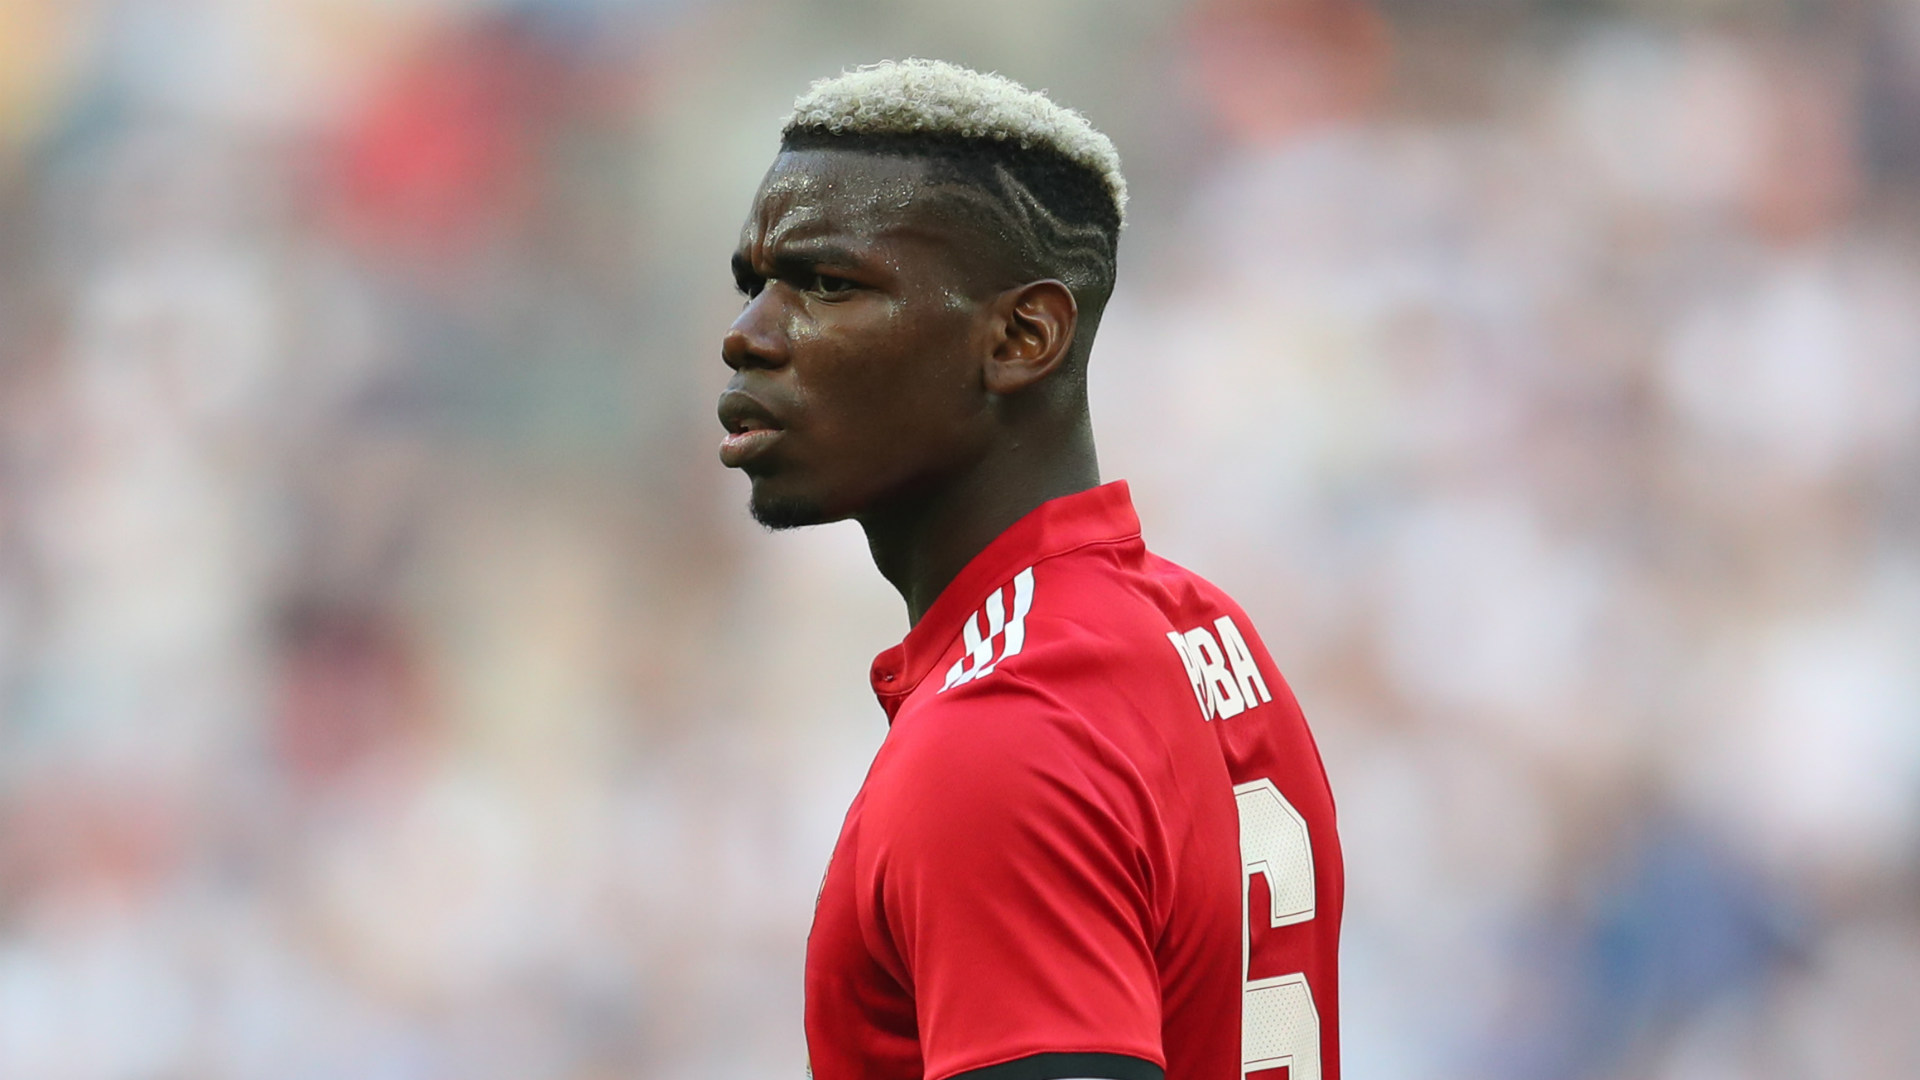 Pogba: I'm judged in a different way to other midfielders